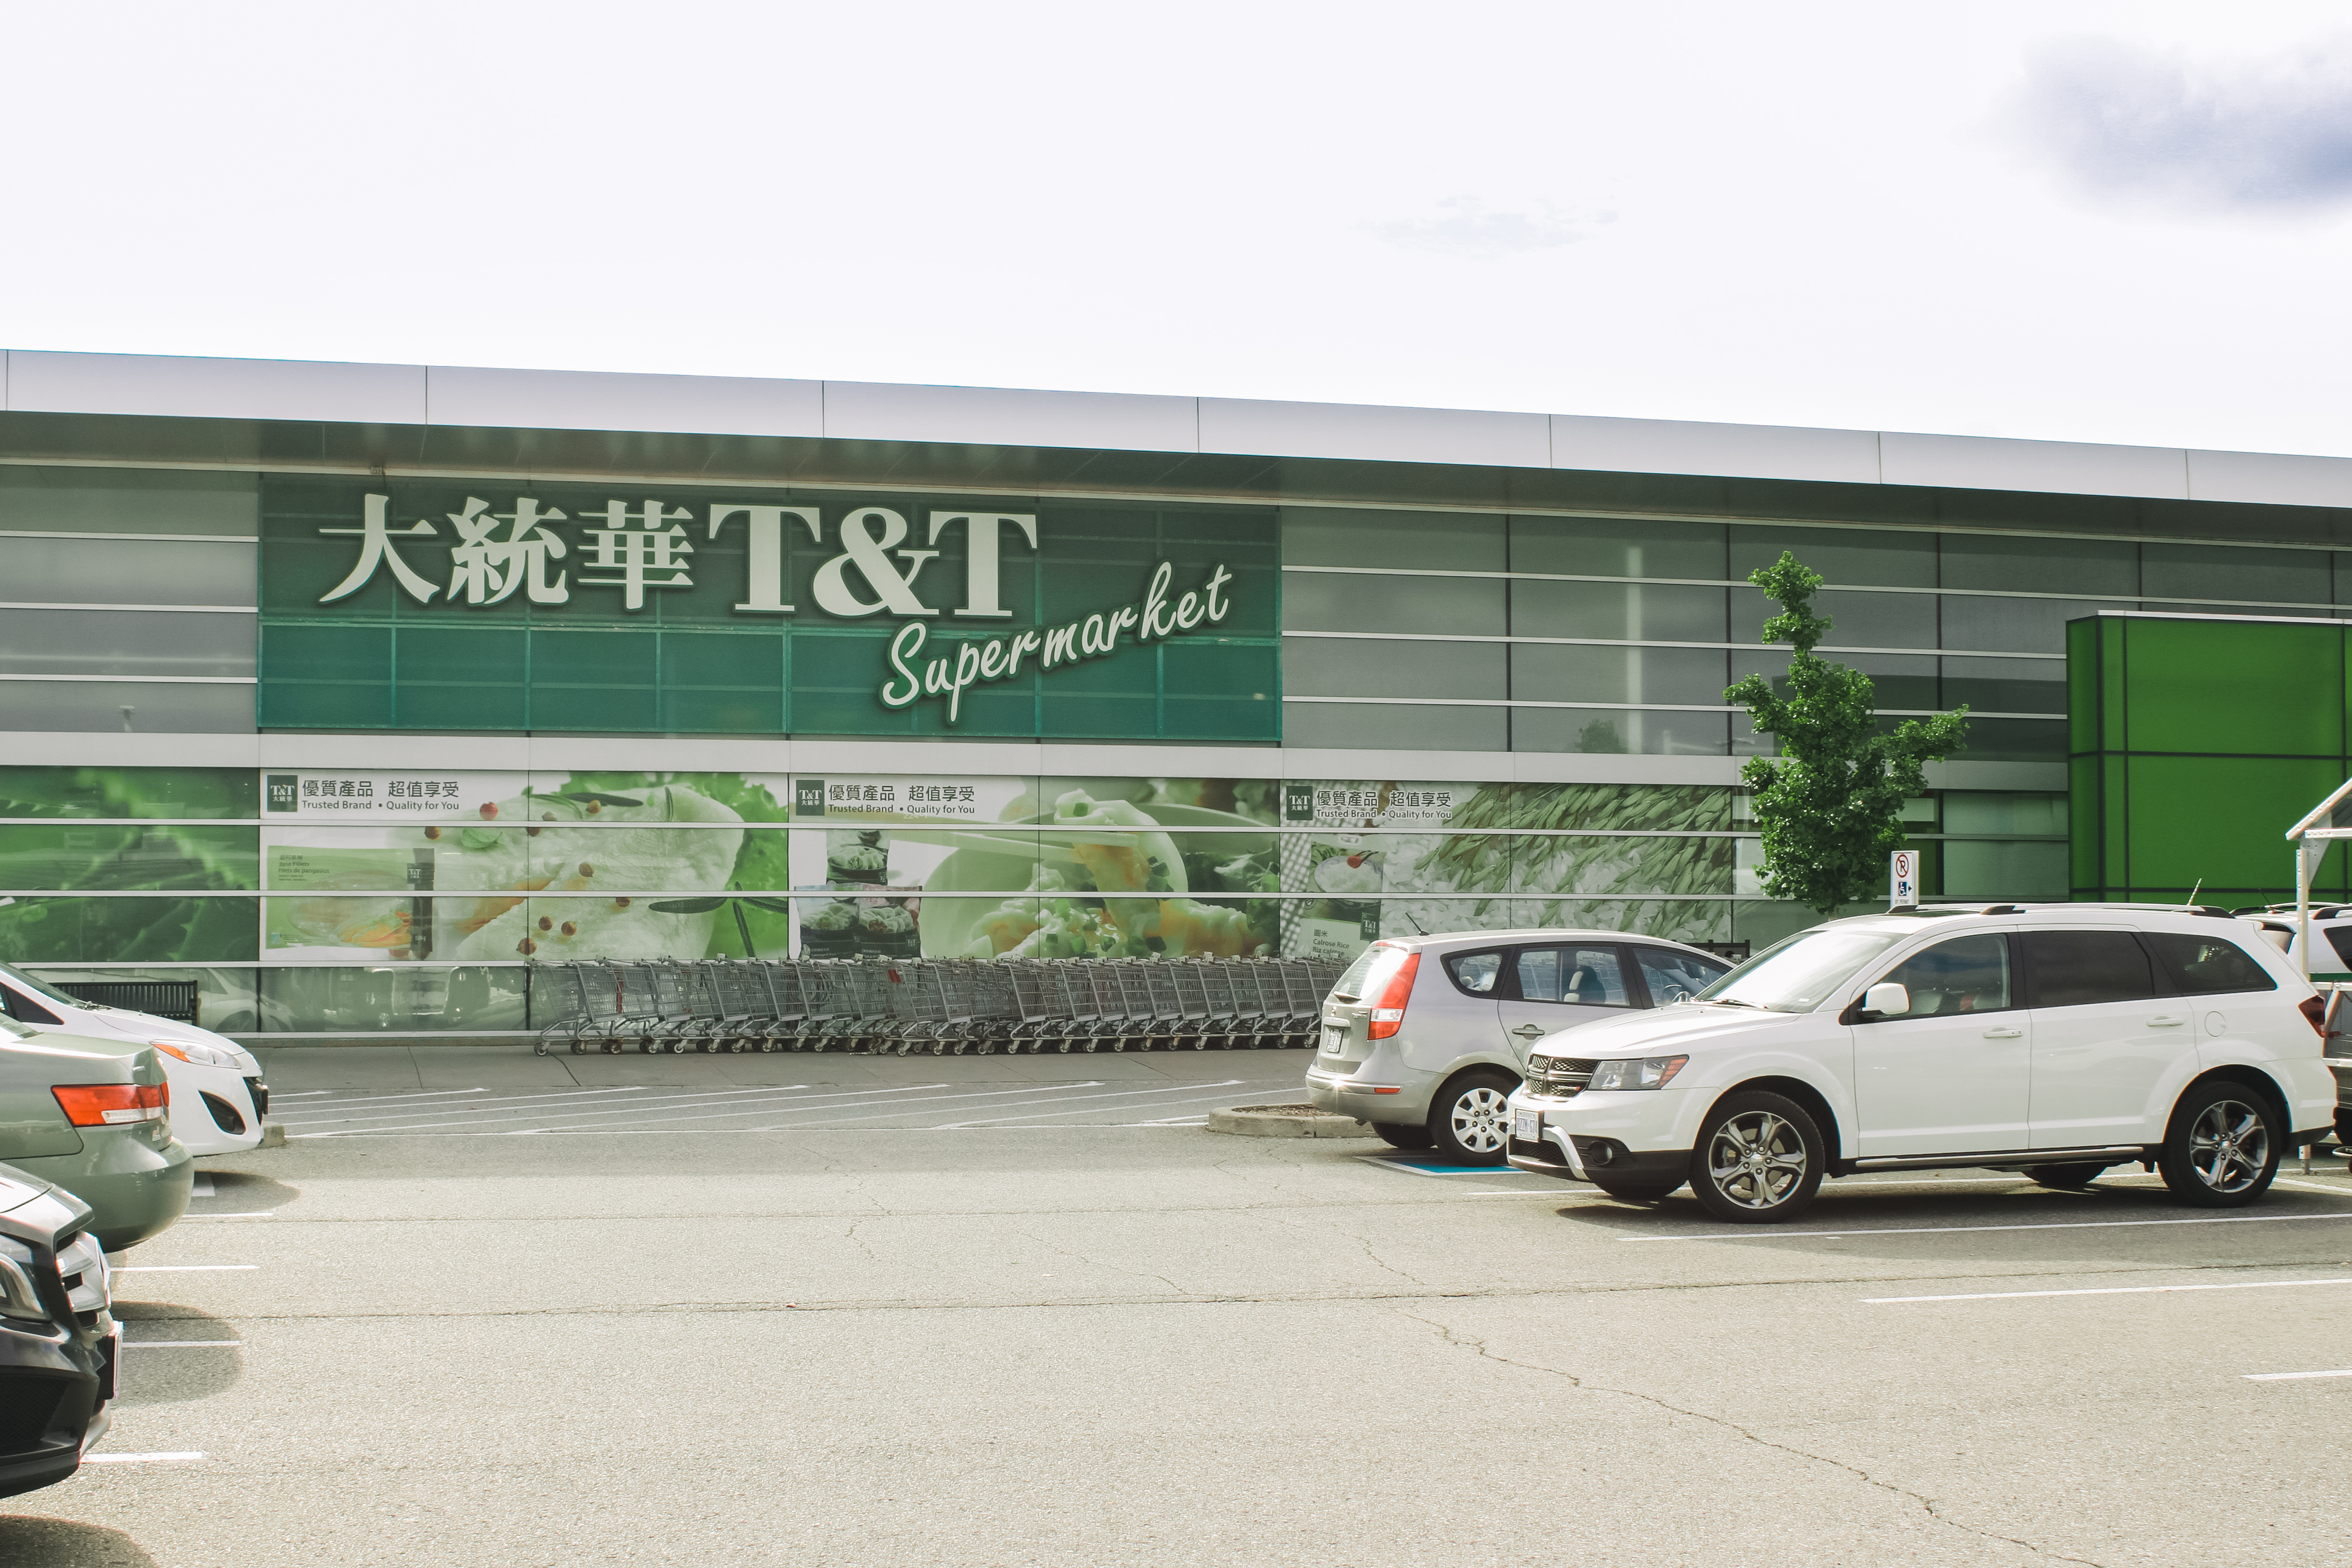 Hunt Club T&T Supermarket